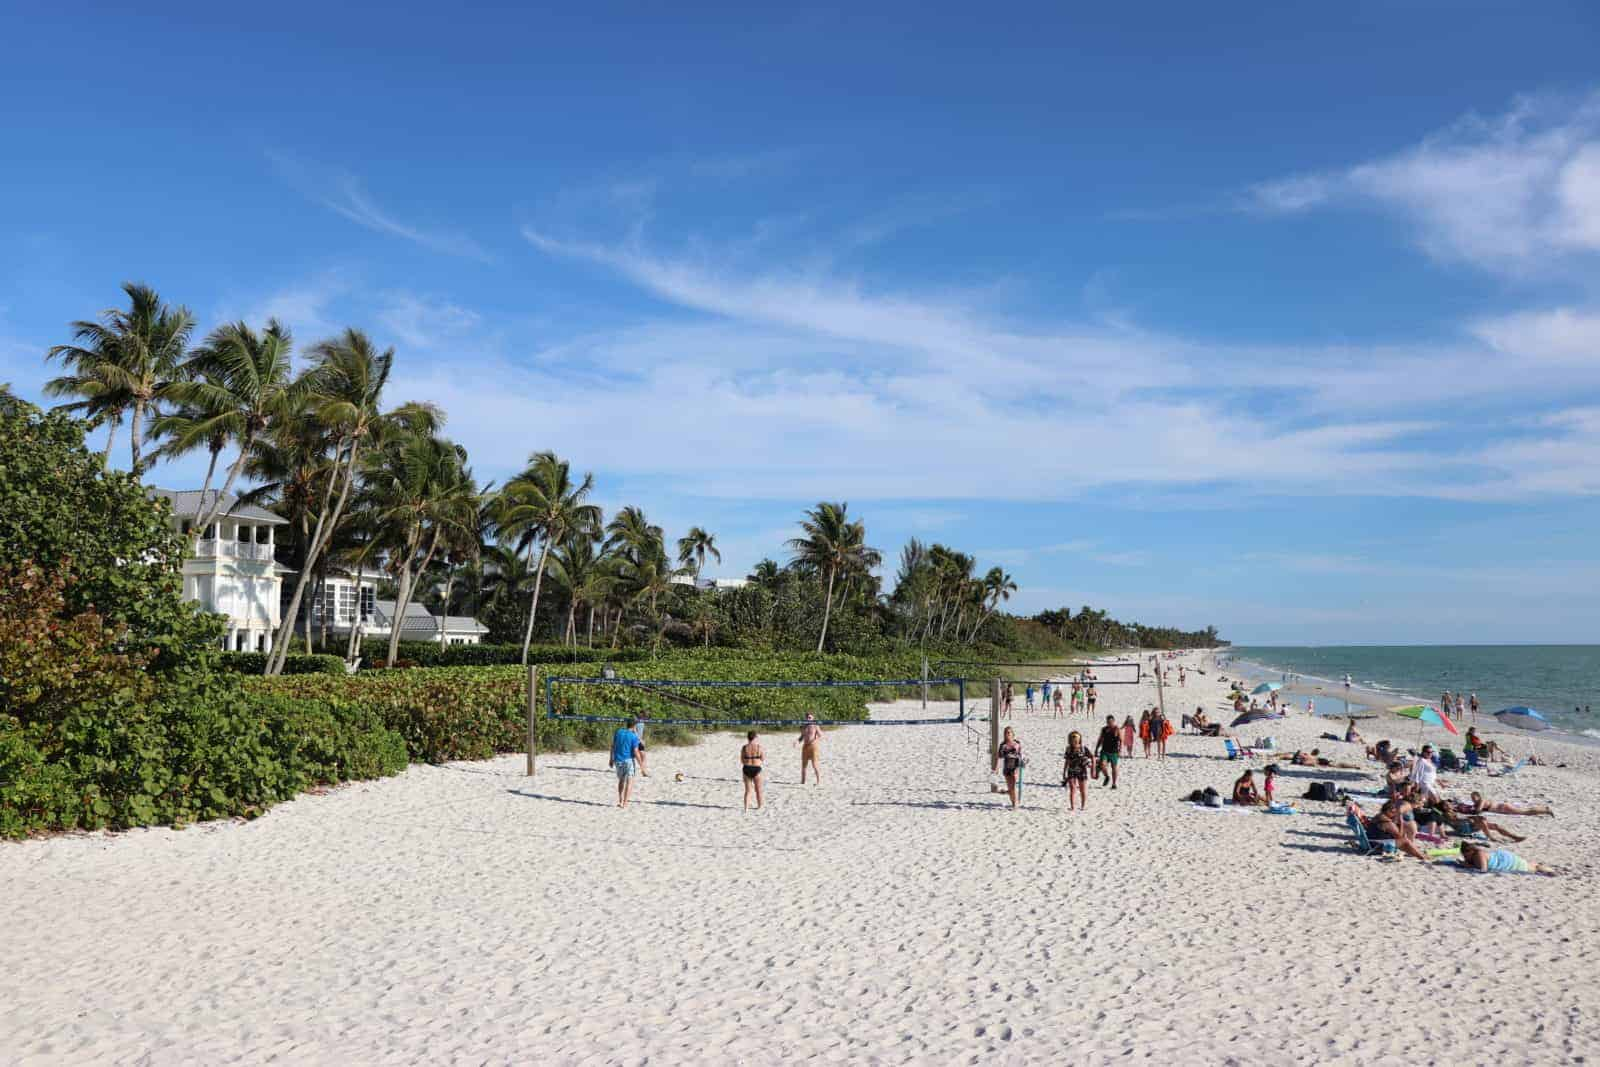 Florida Businesses For Sale from Green & Co., a Florida Business Brokerage Firm service all of Florida. Business Broker - Florida Businesses For Sale